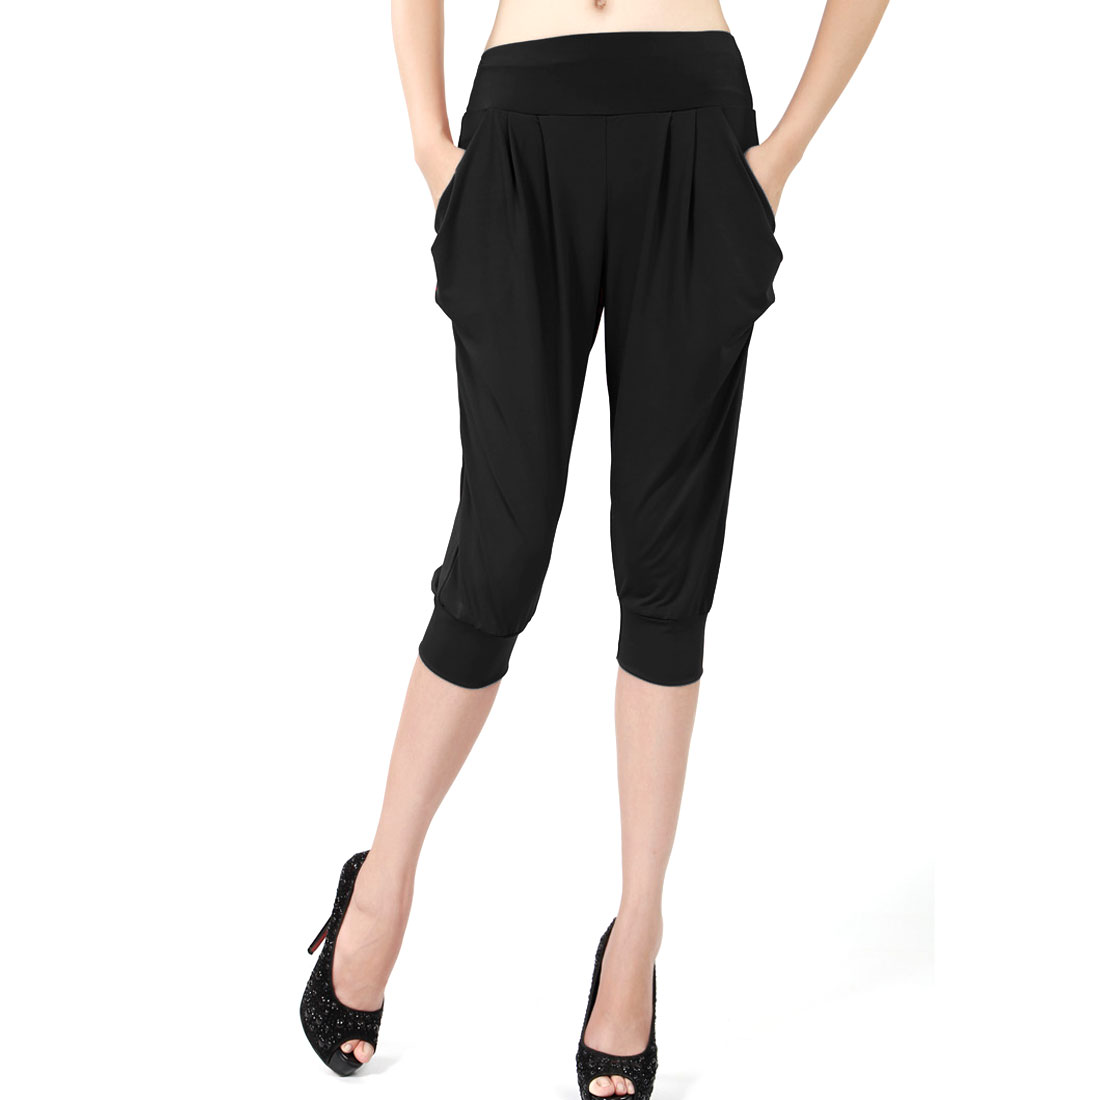 Women Elastic Waist Pockets Side Sports Harem Style Cropped Pants Black XS